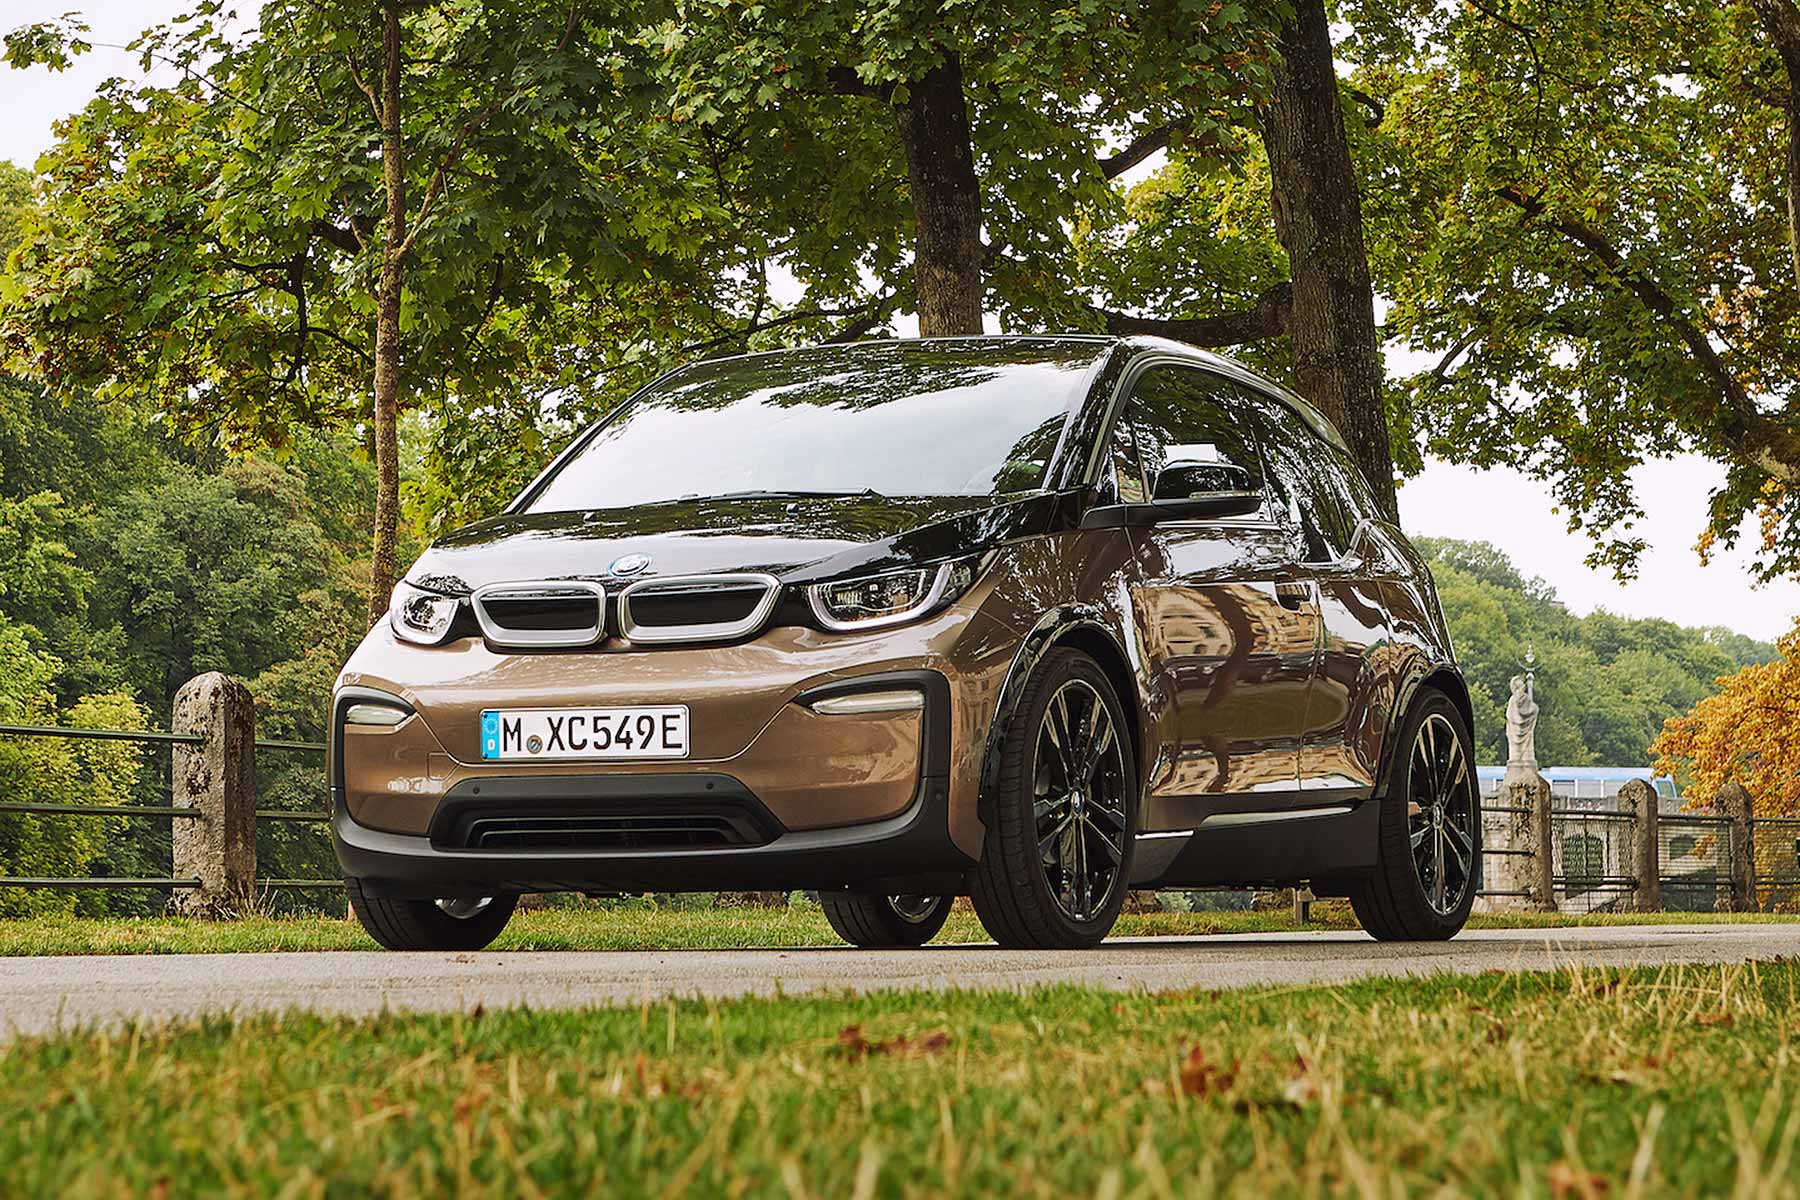 63 New 2019 Bmw Electric Car Release Date with 2019 Bmw Electric Car